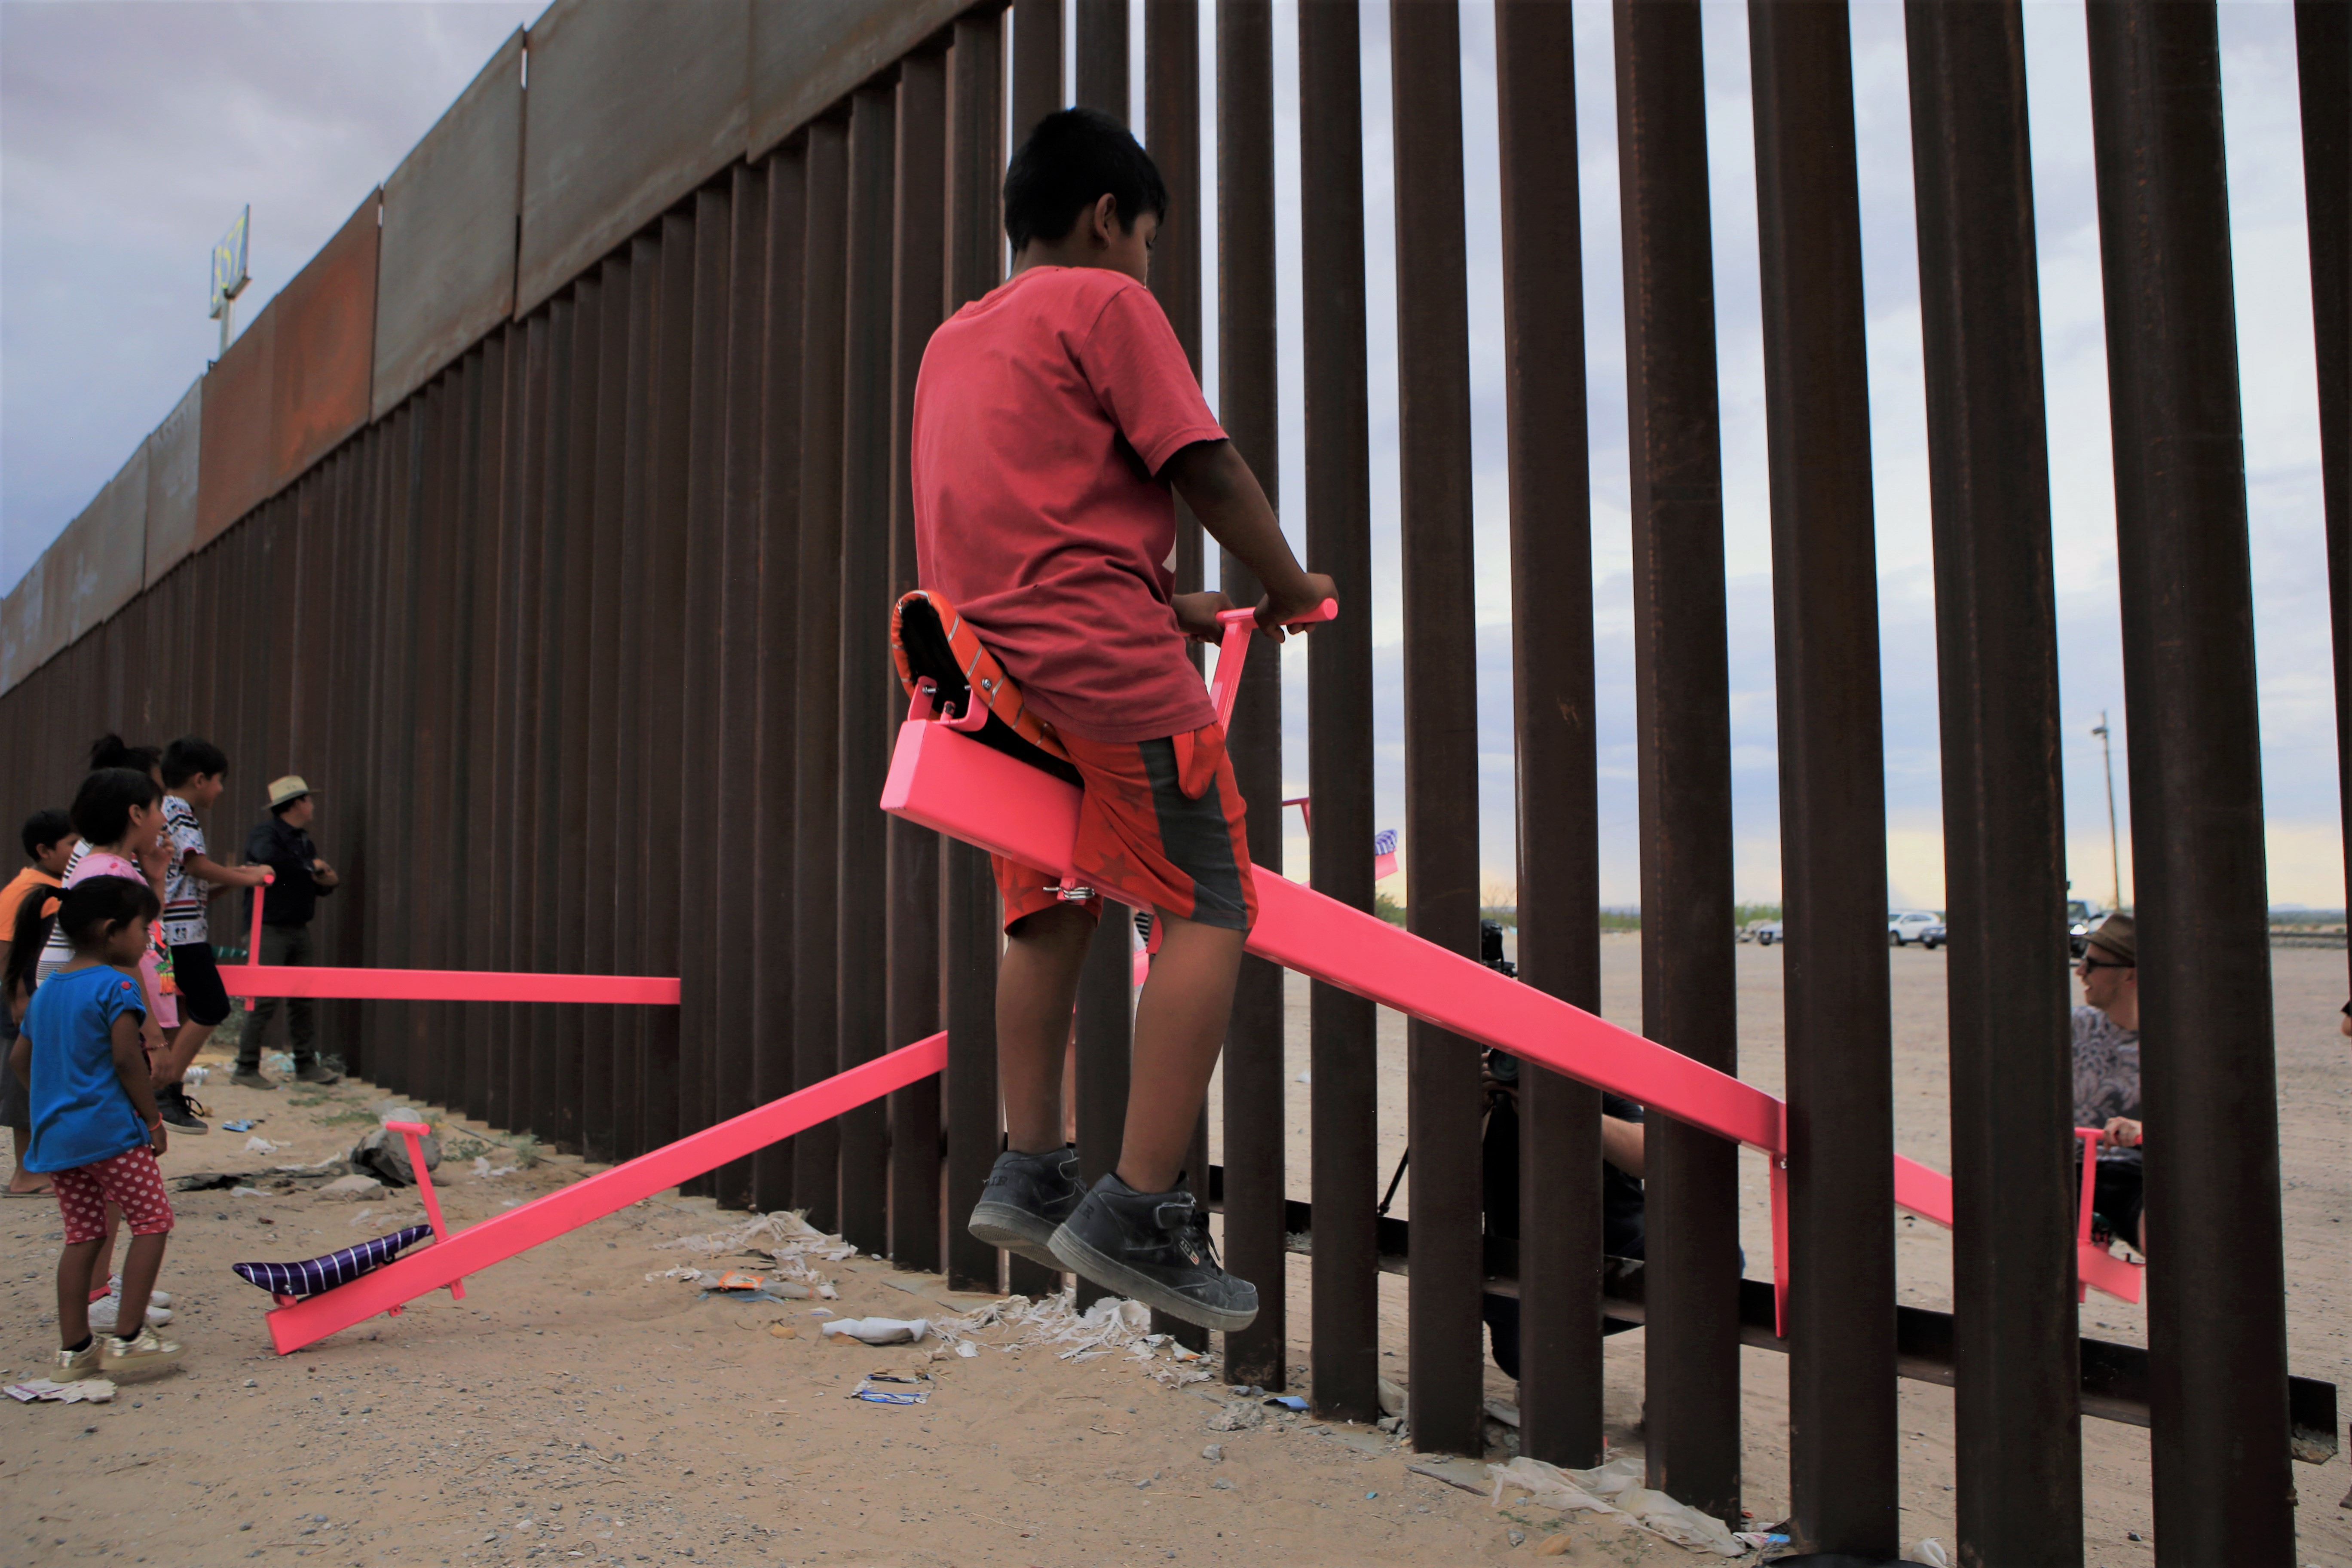 Mexico US Migrants Children on SeeSaw Swing over Mexican Boarder